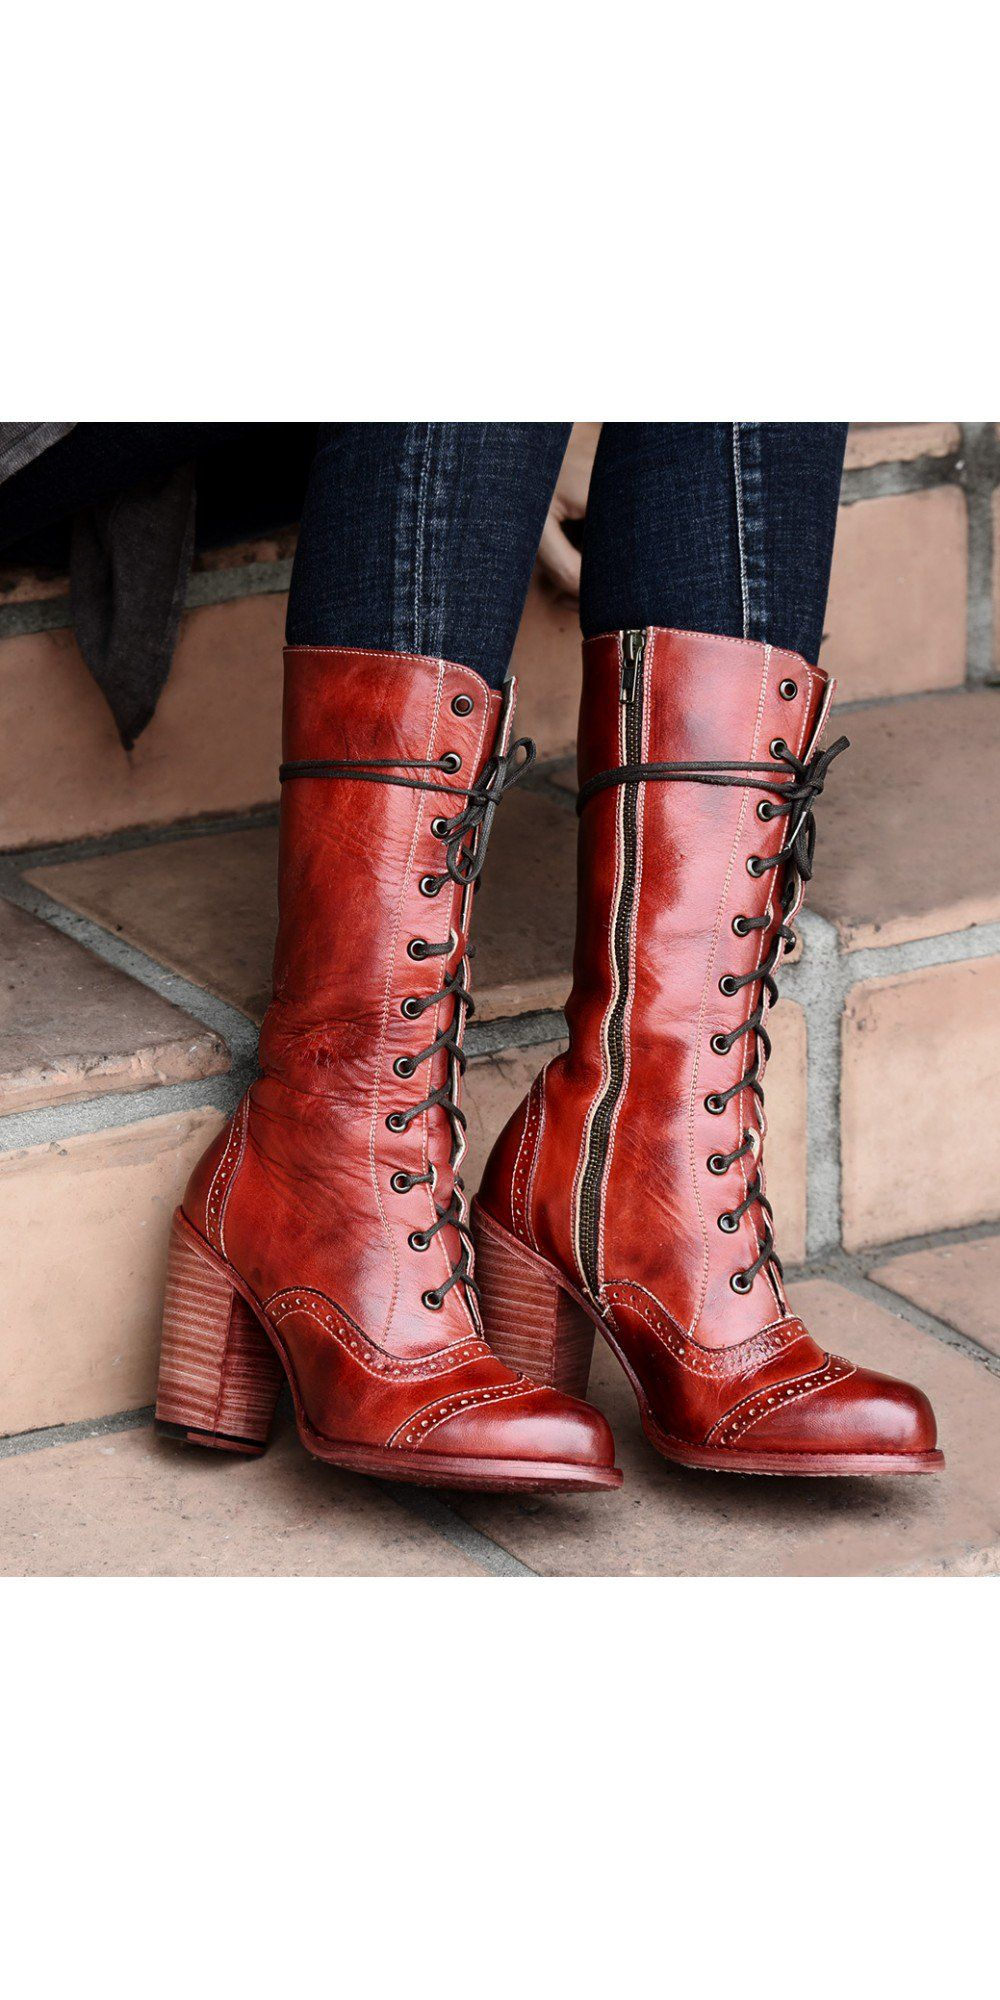 52935585f788 Ariana Victorian Inspired Mid-Calf Leather Boots in Red Rustic by Oak Tree  Farms